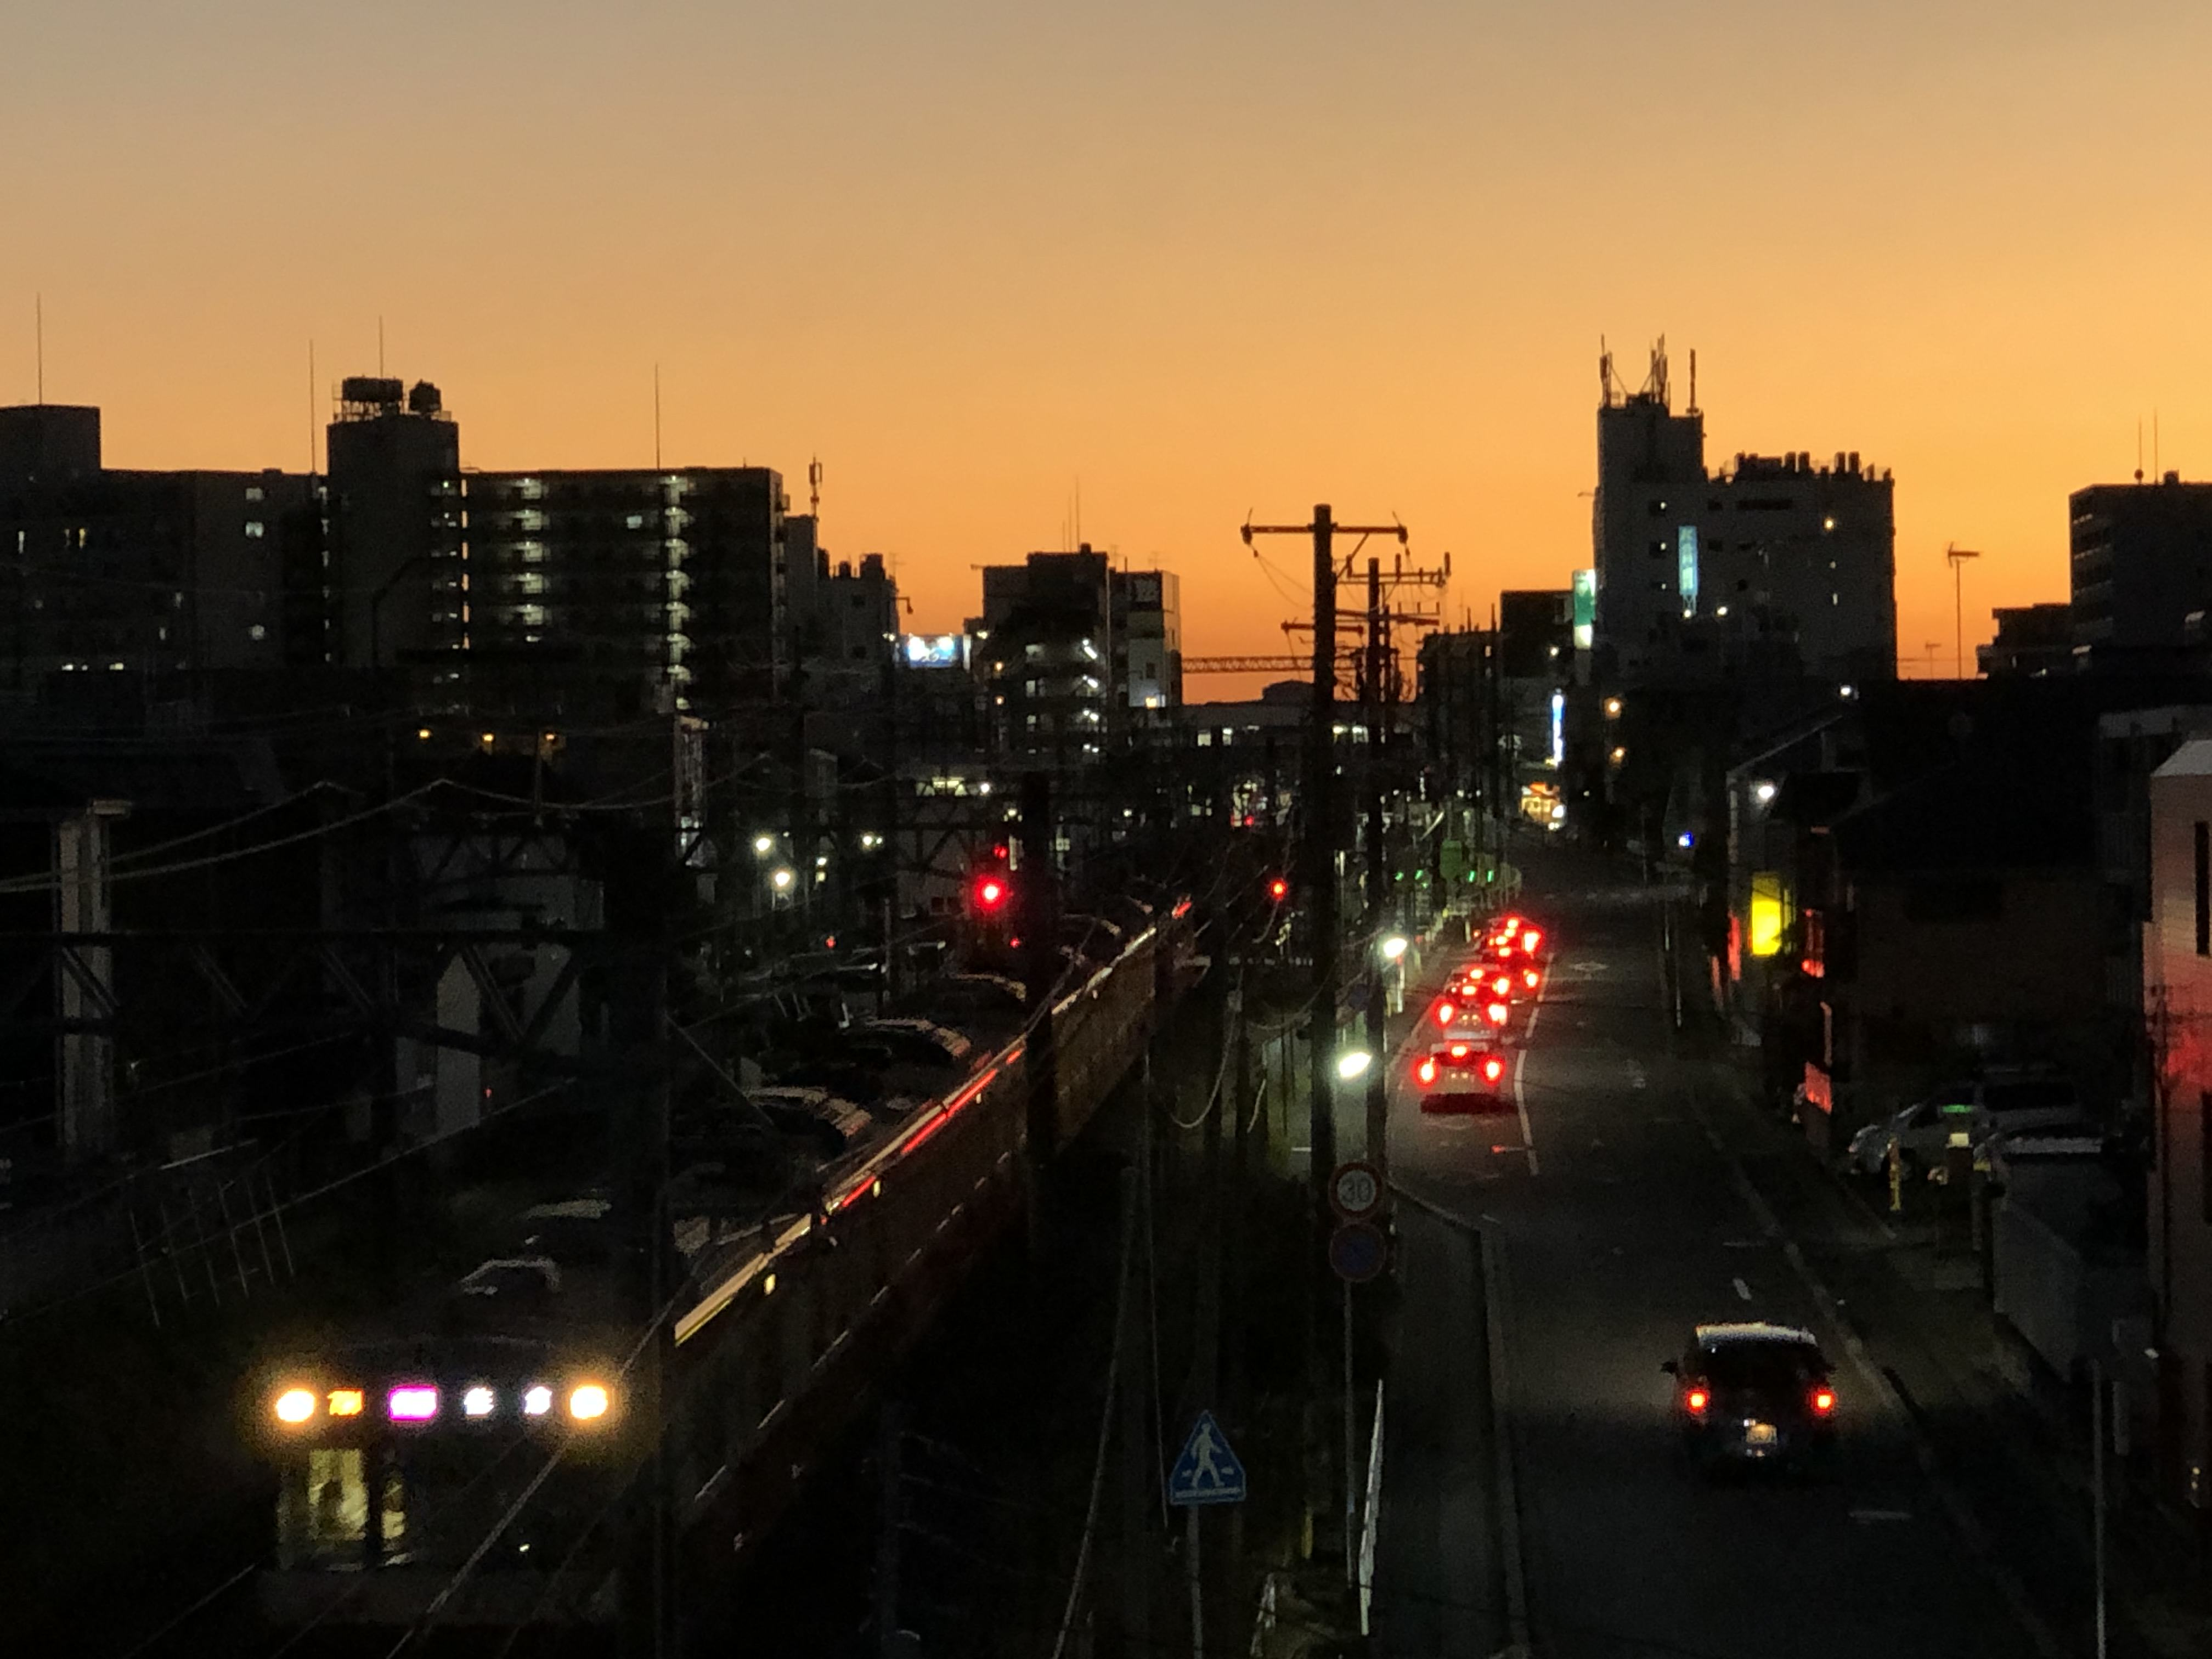 Picture of a city during the dusk with a train passing by and several vehicles on the road.